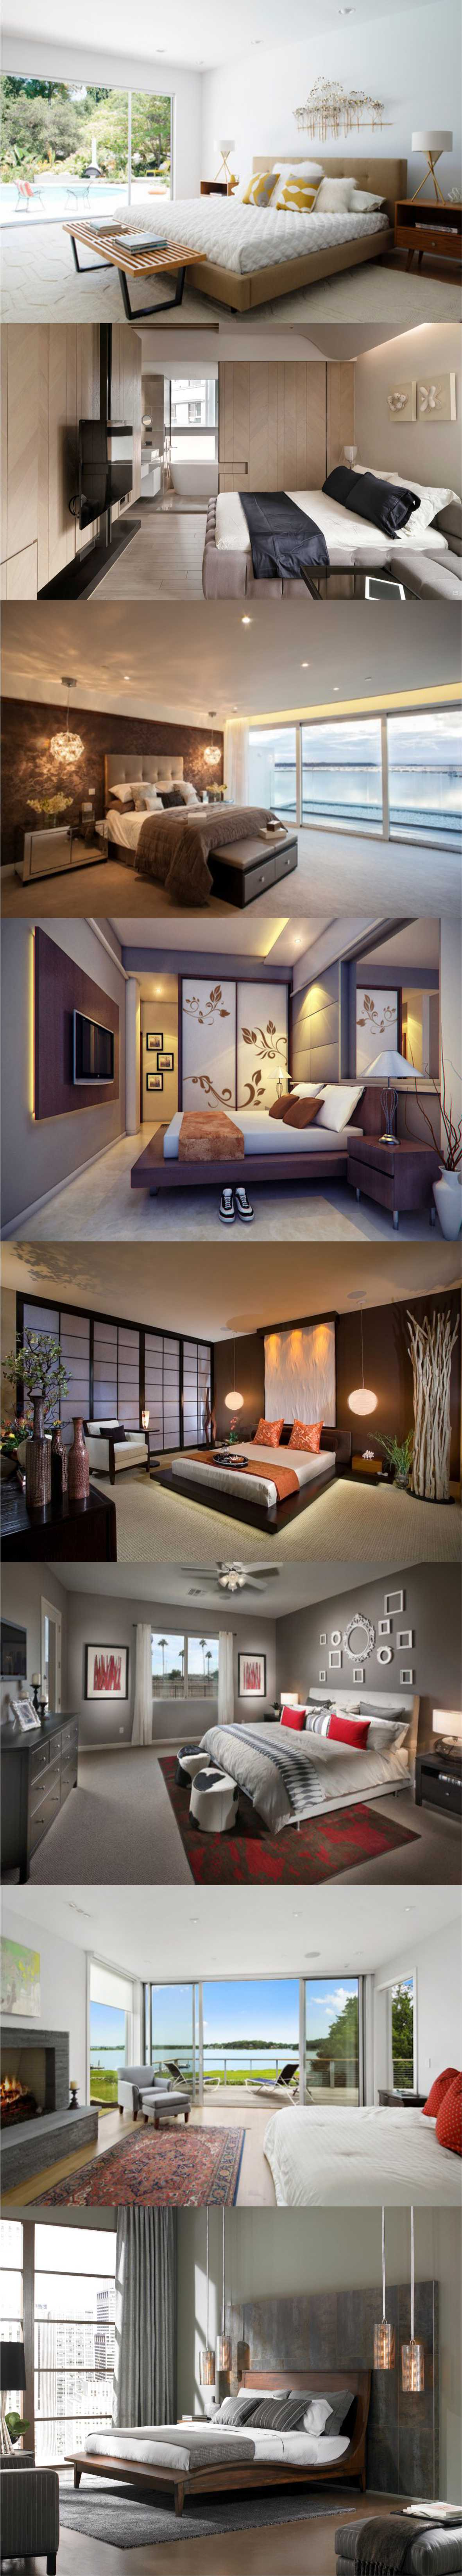 Contemporary bedroom design for your home 2018